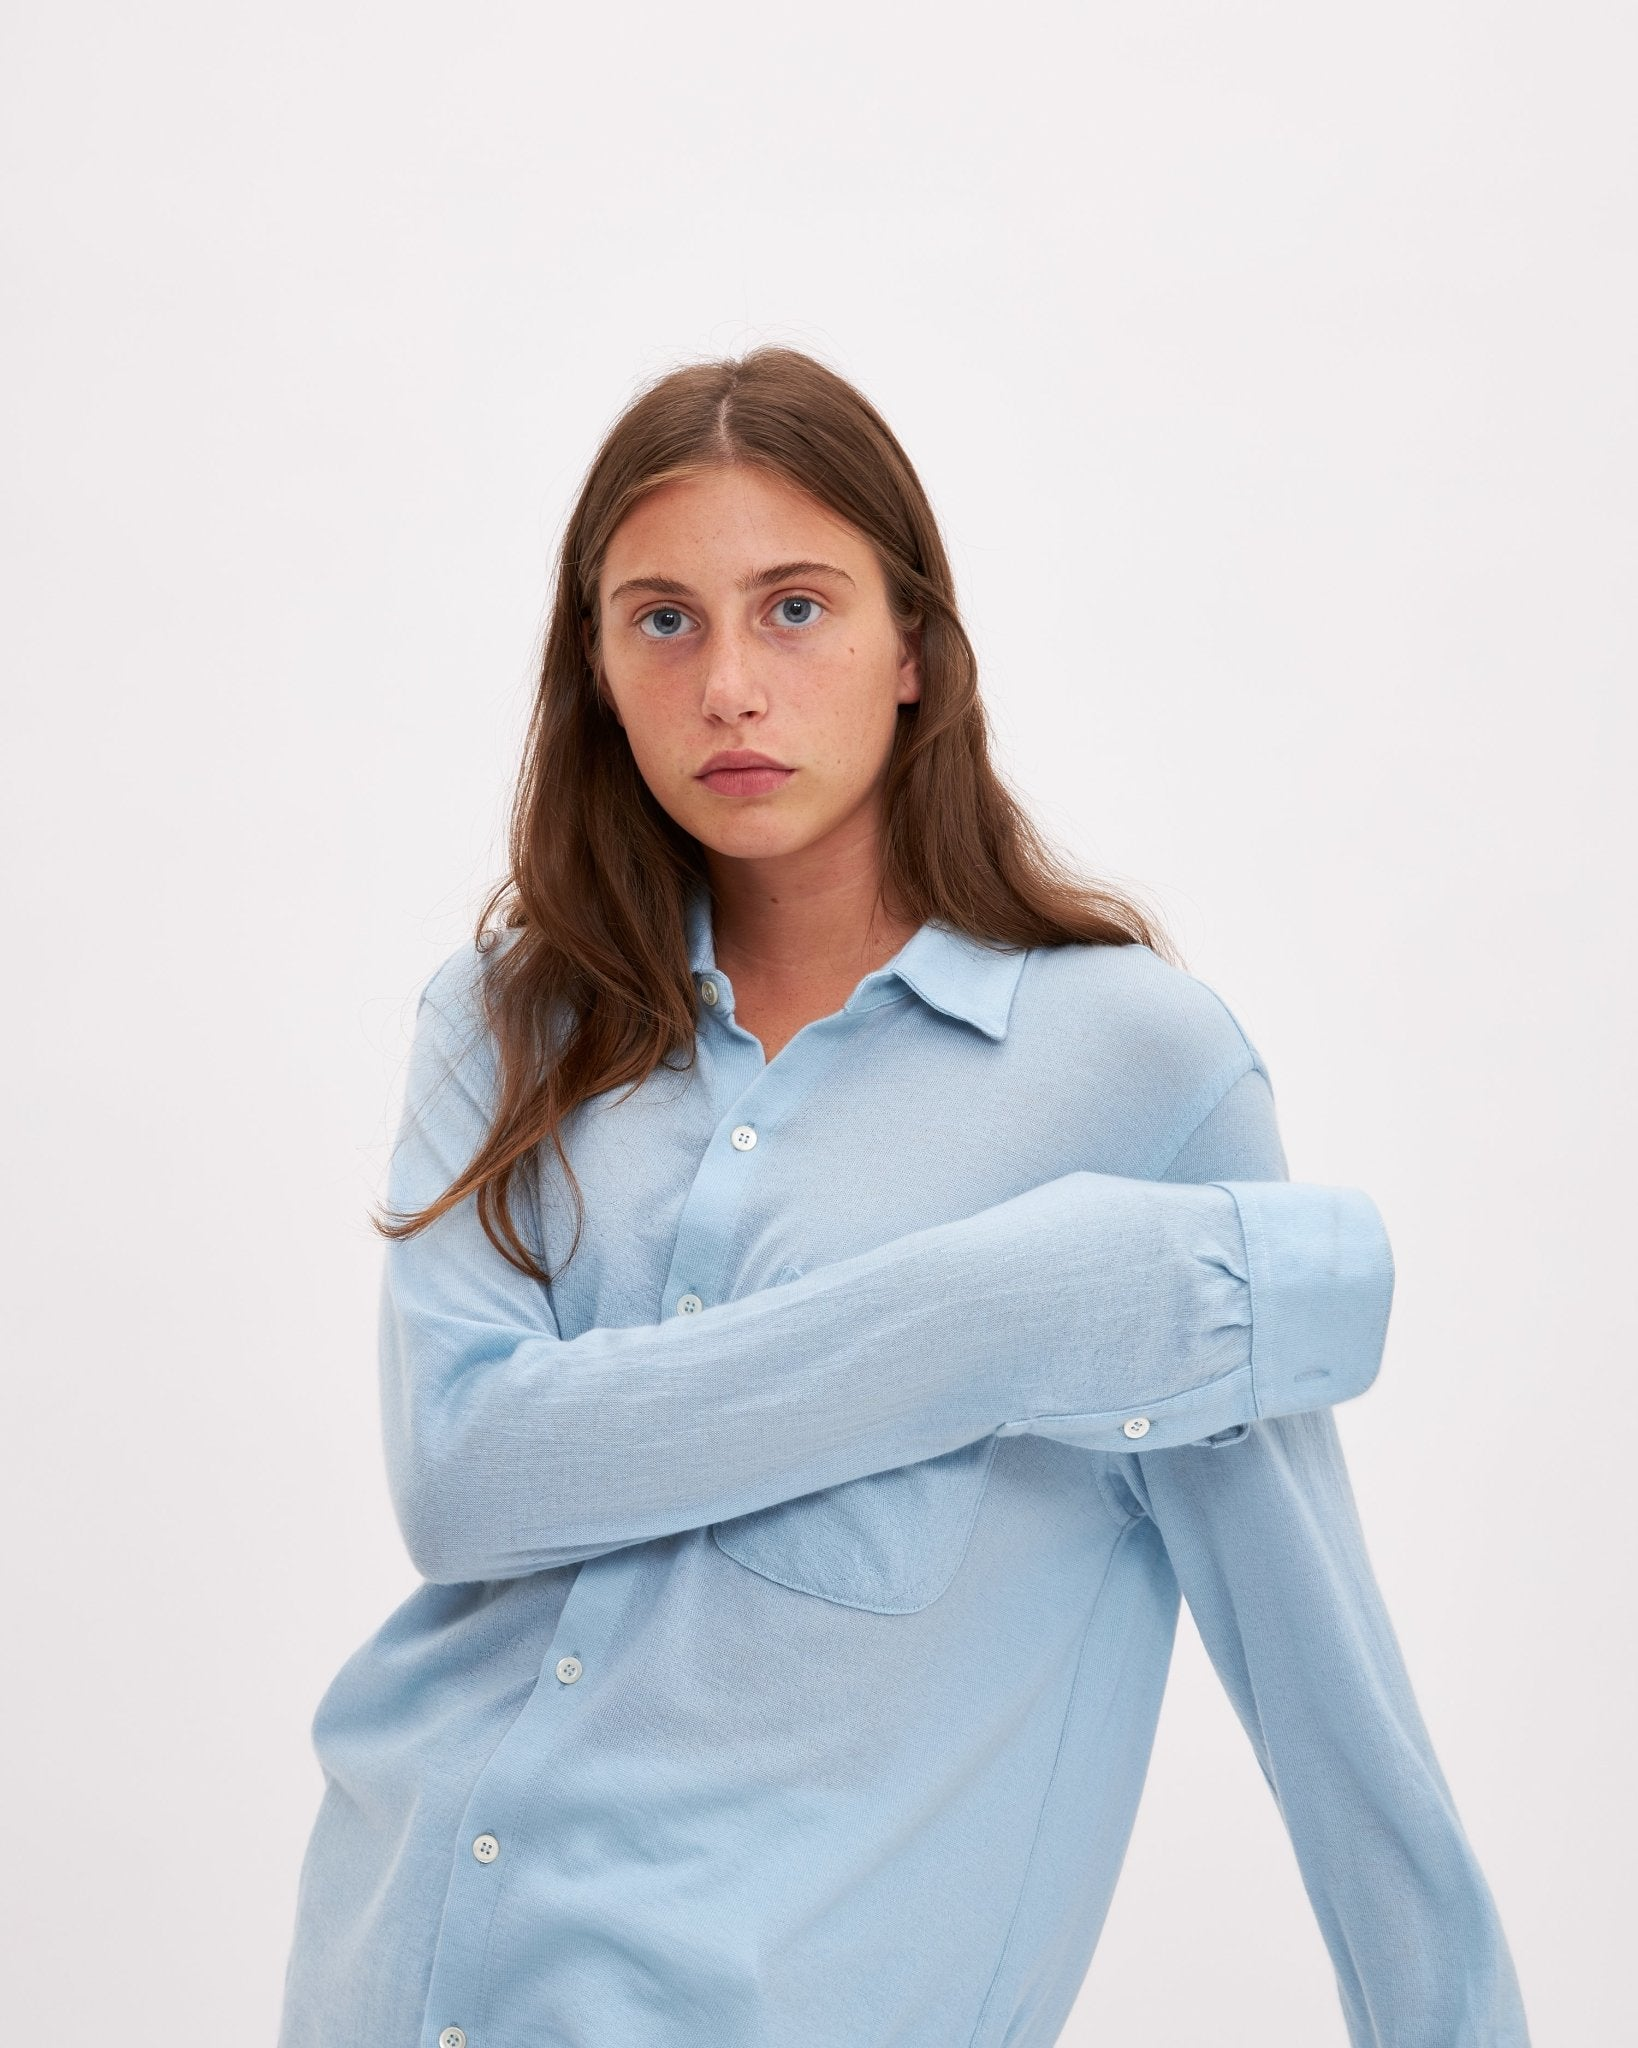 Bellariva Cashmere - Light Blue - The Clothing LoungeLungomare